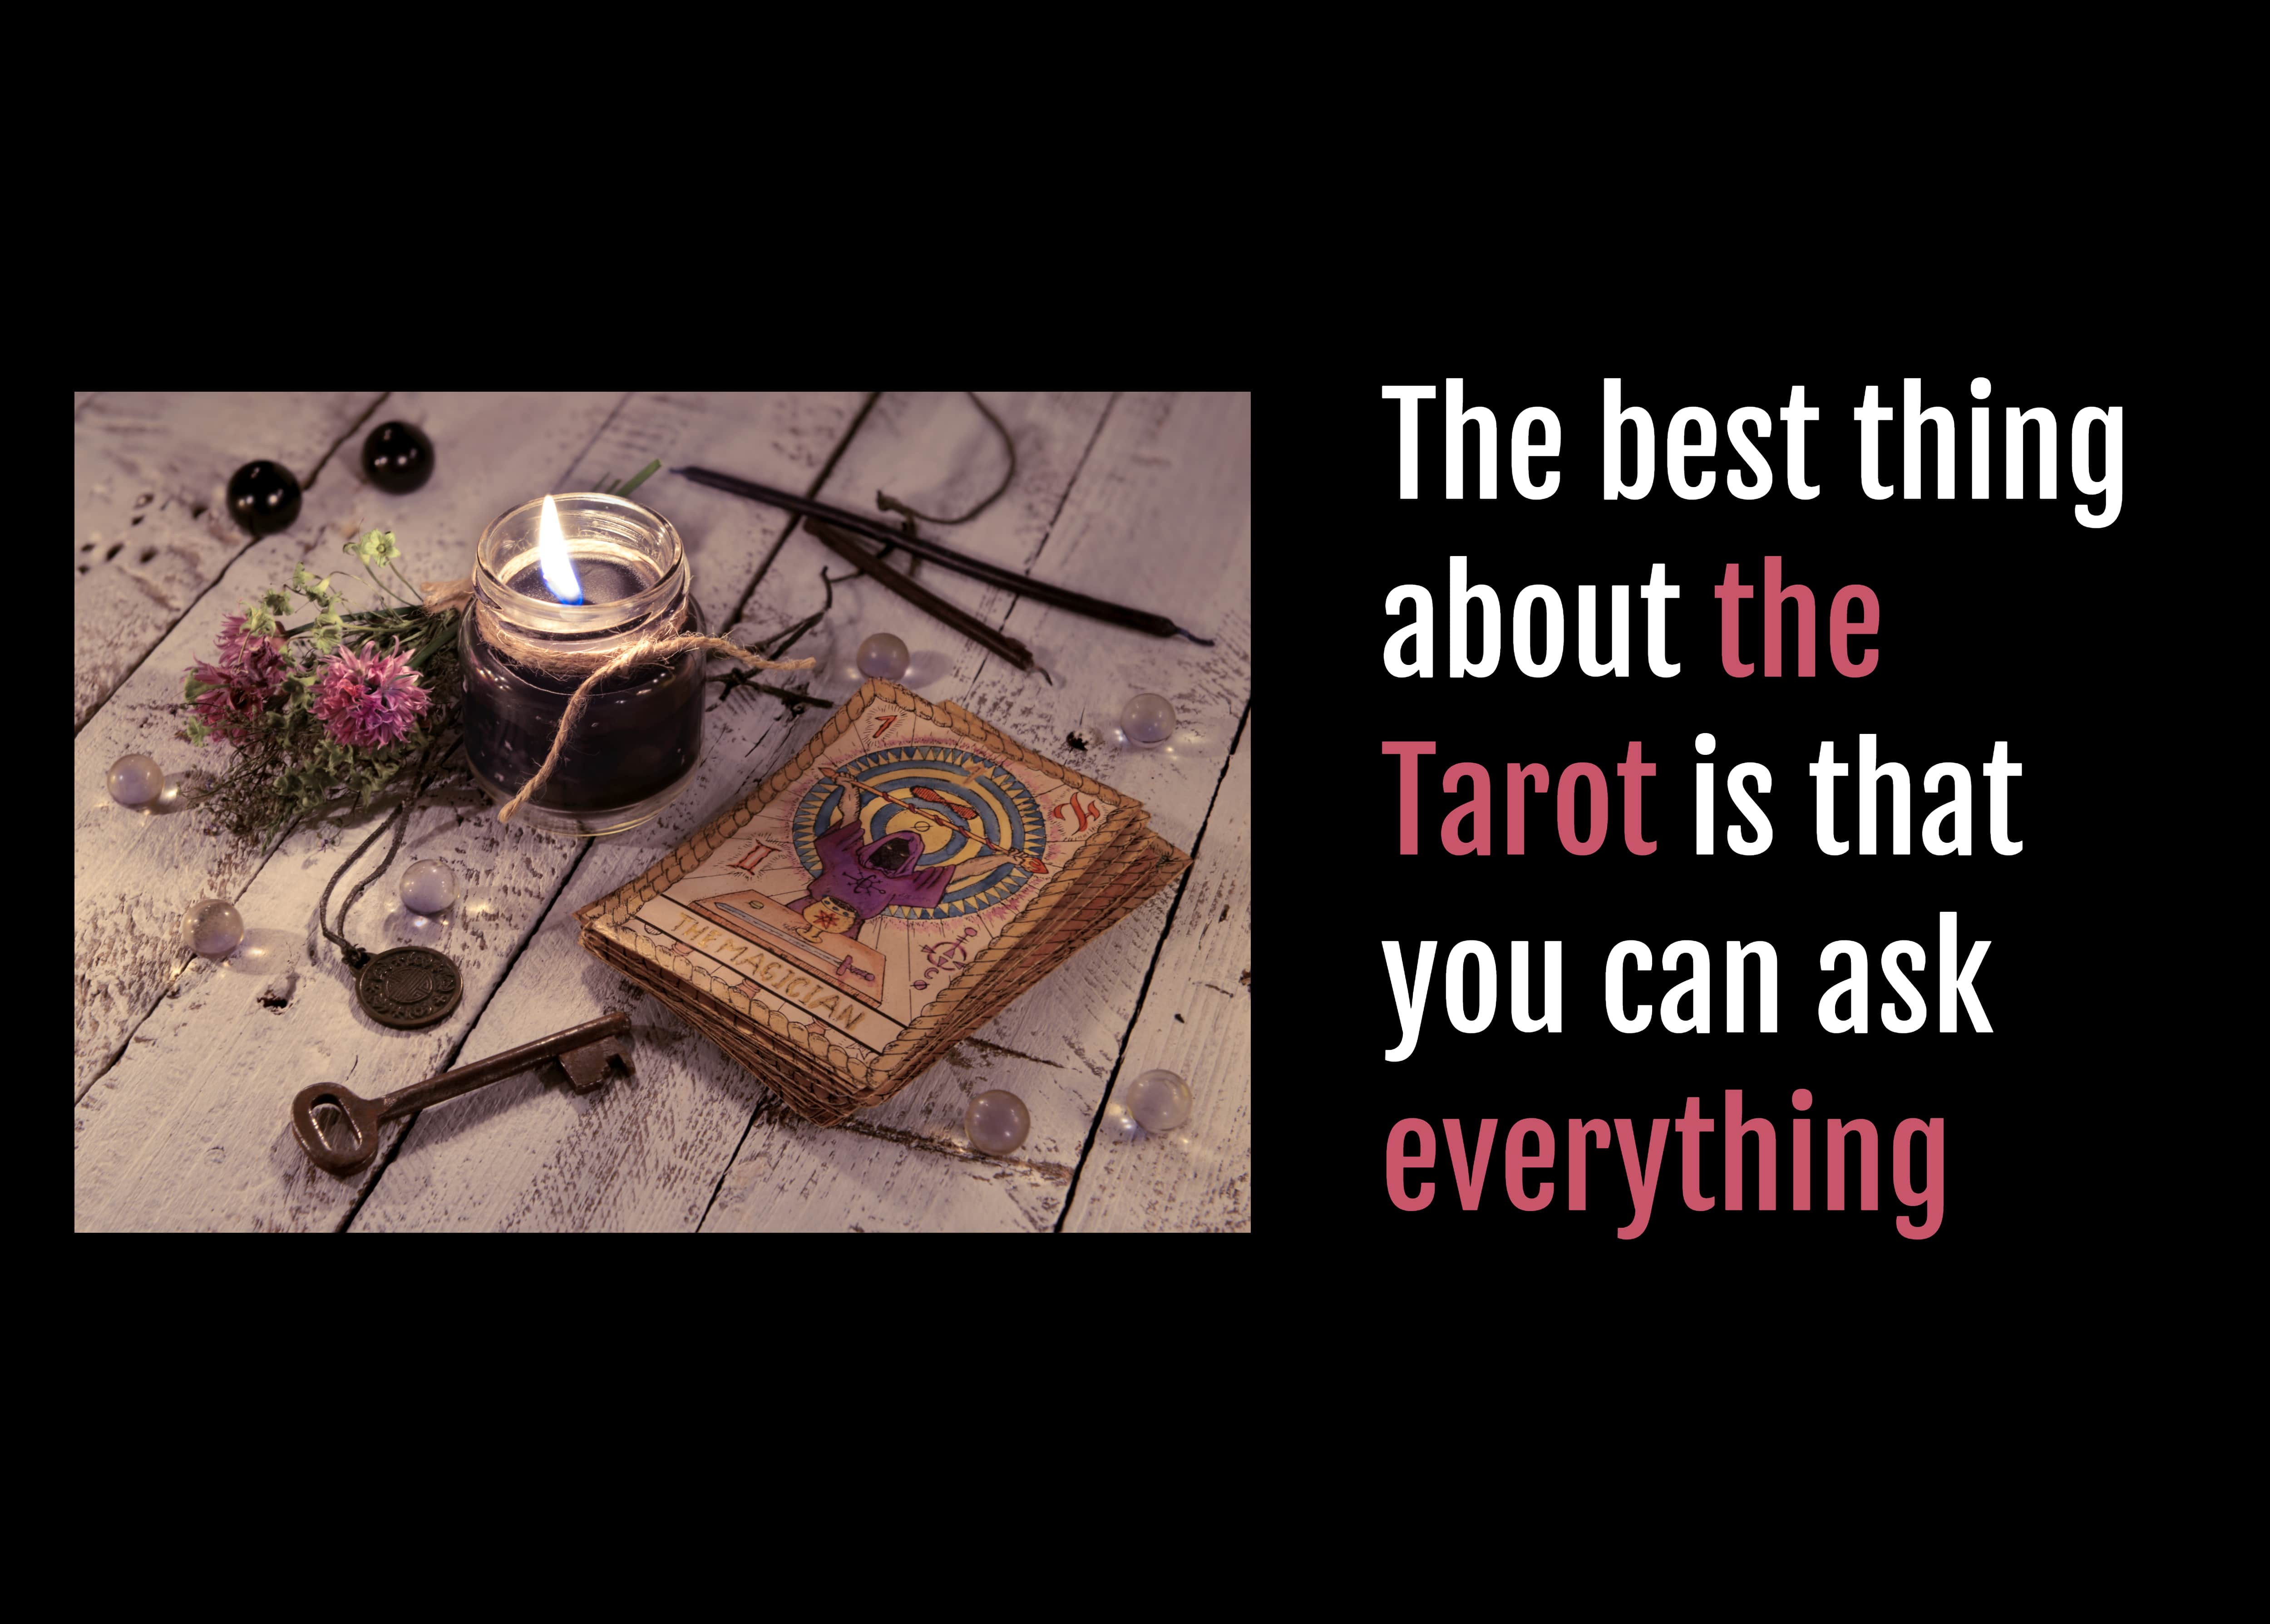 a Tarot card deck on a wooden table